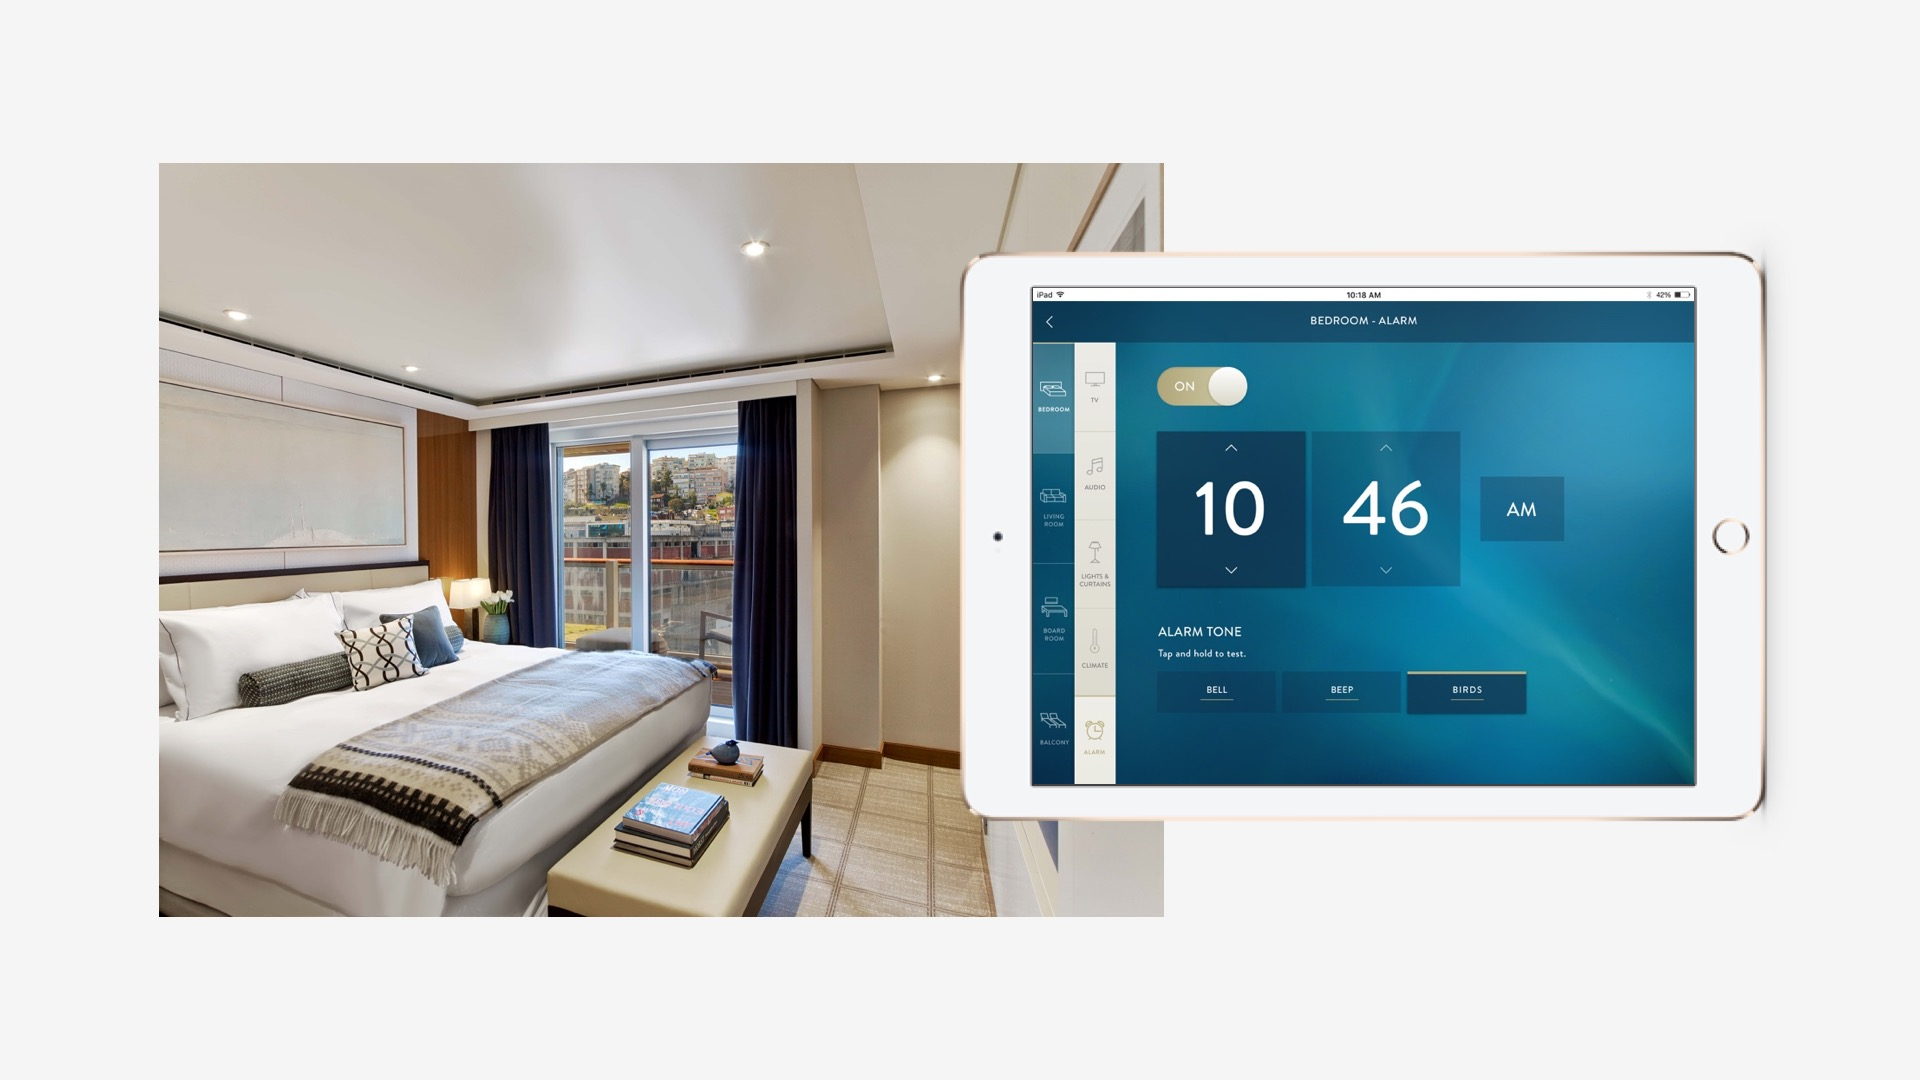 Viking Cruises: Owner's Suite App